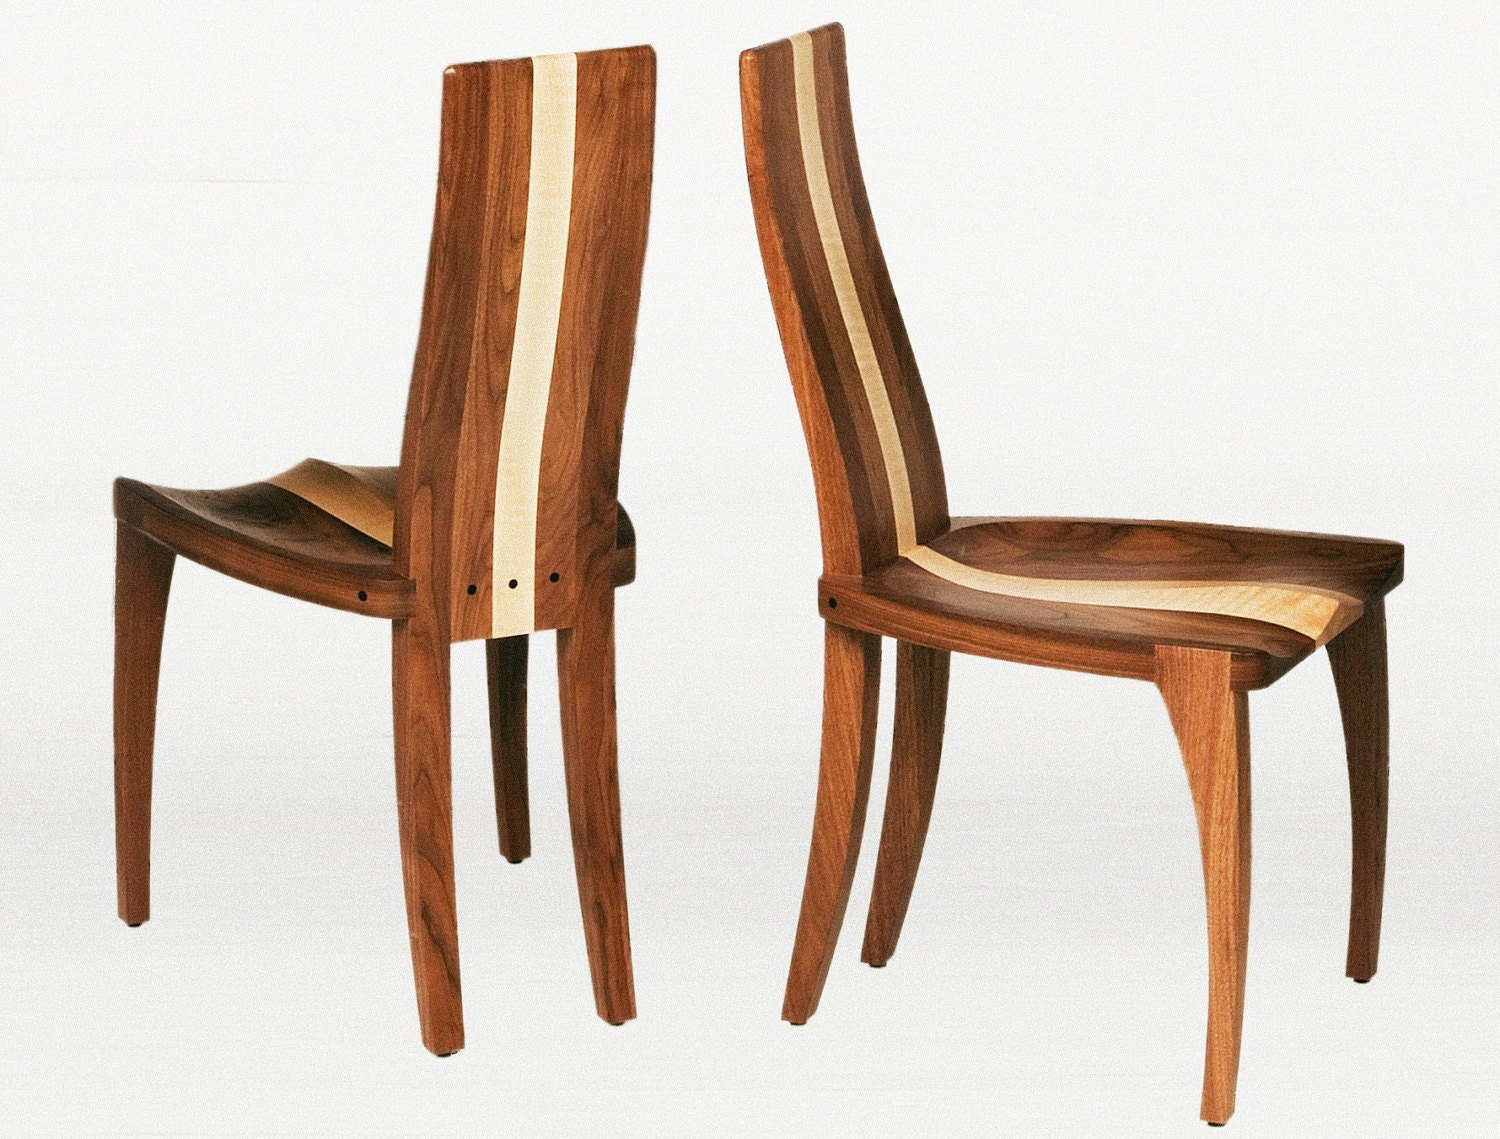 Modern dining chair in solid walnut wood by nathanhunterdesign for Walnut dining chairs modern